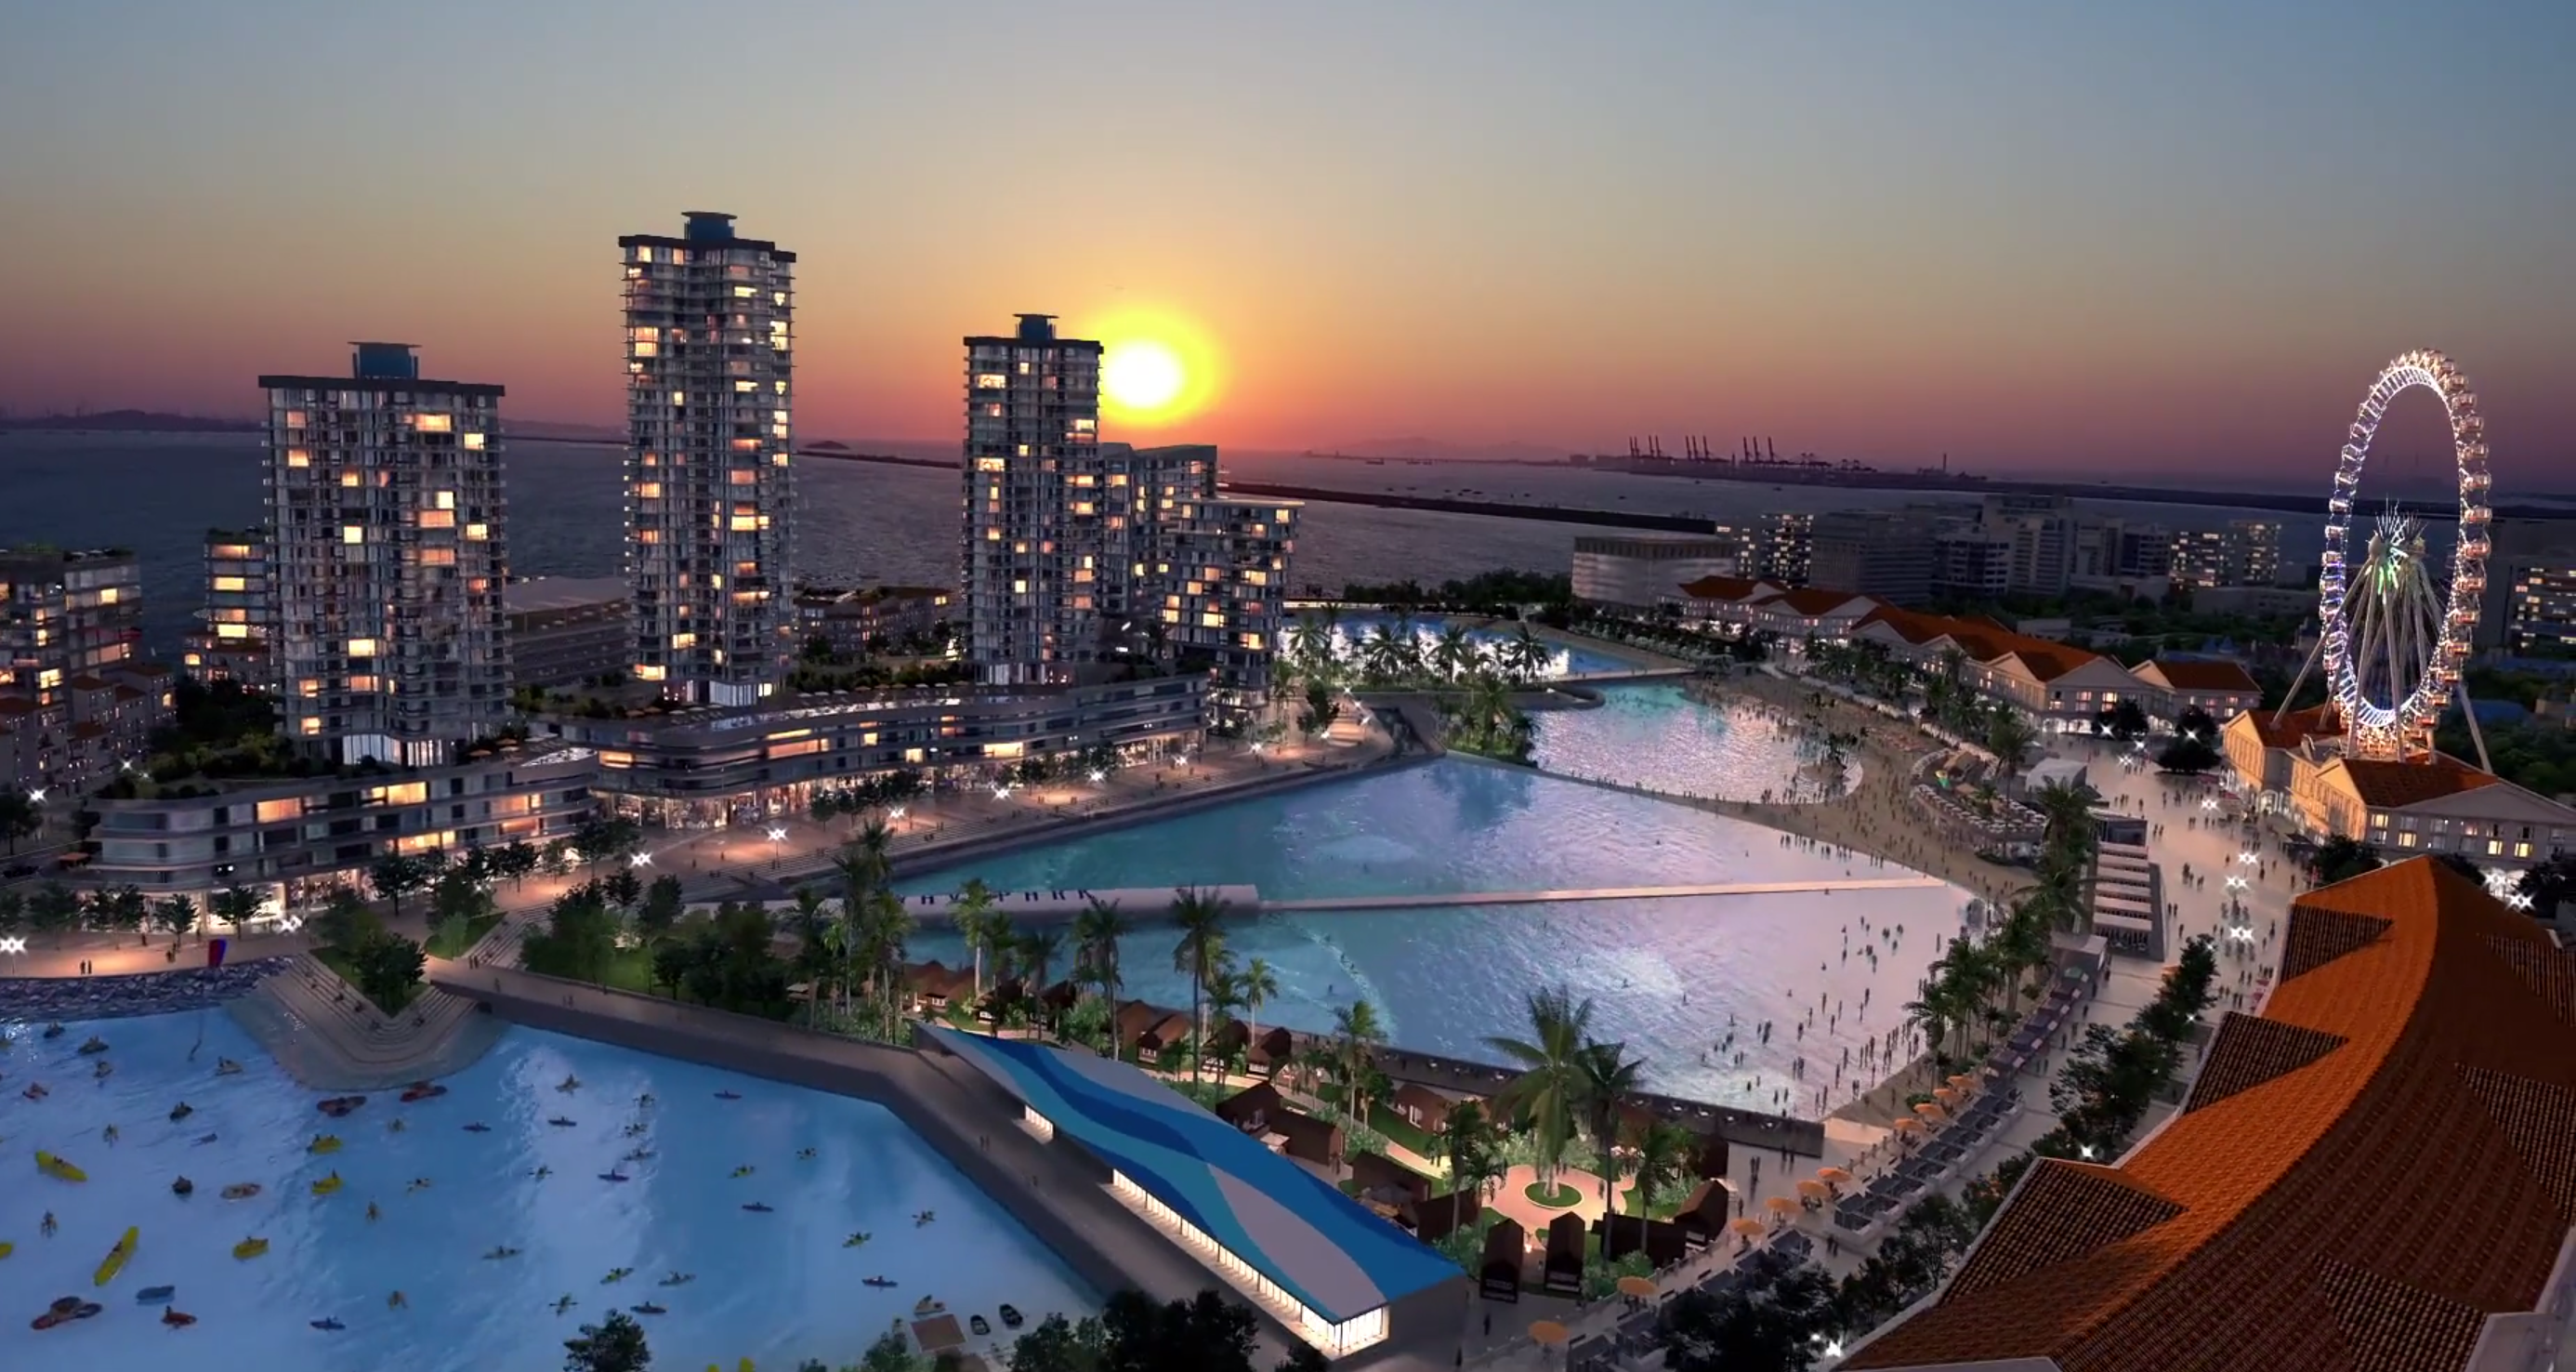 Turtle Island wave pool development